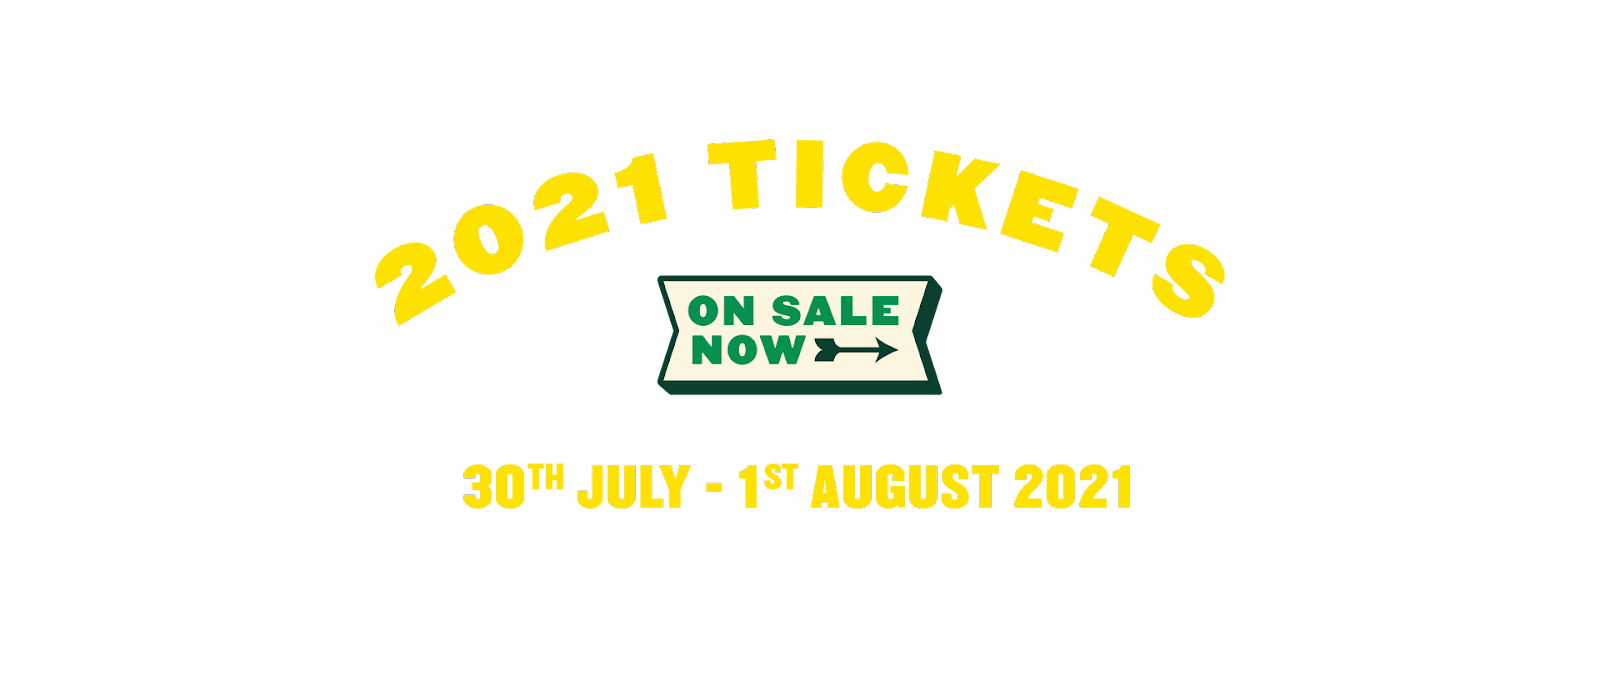 yellow text reads 2021 tickets 30th july - 1st august  2021 green text in shape reads on sale now